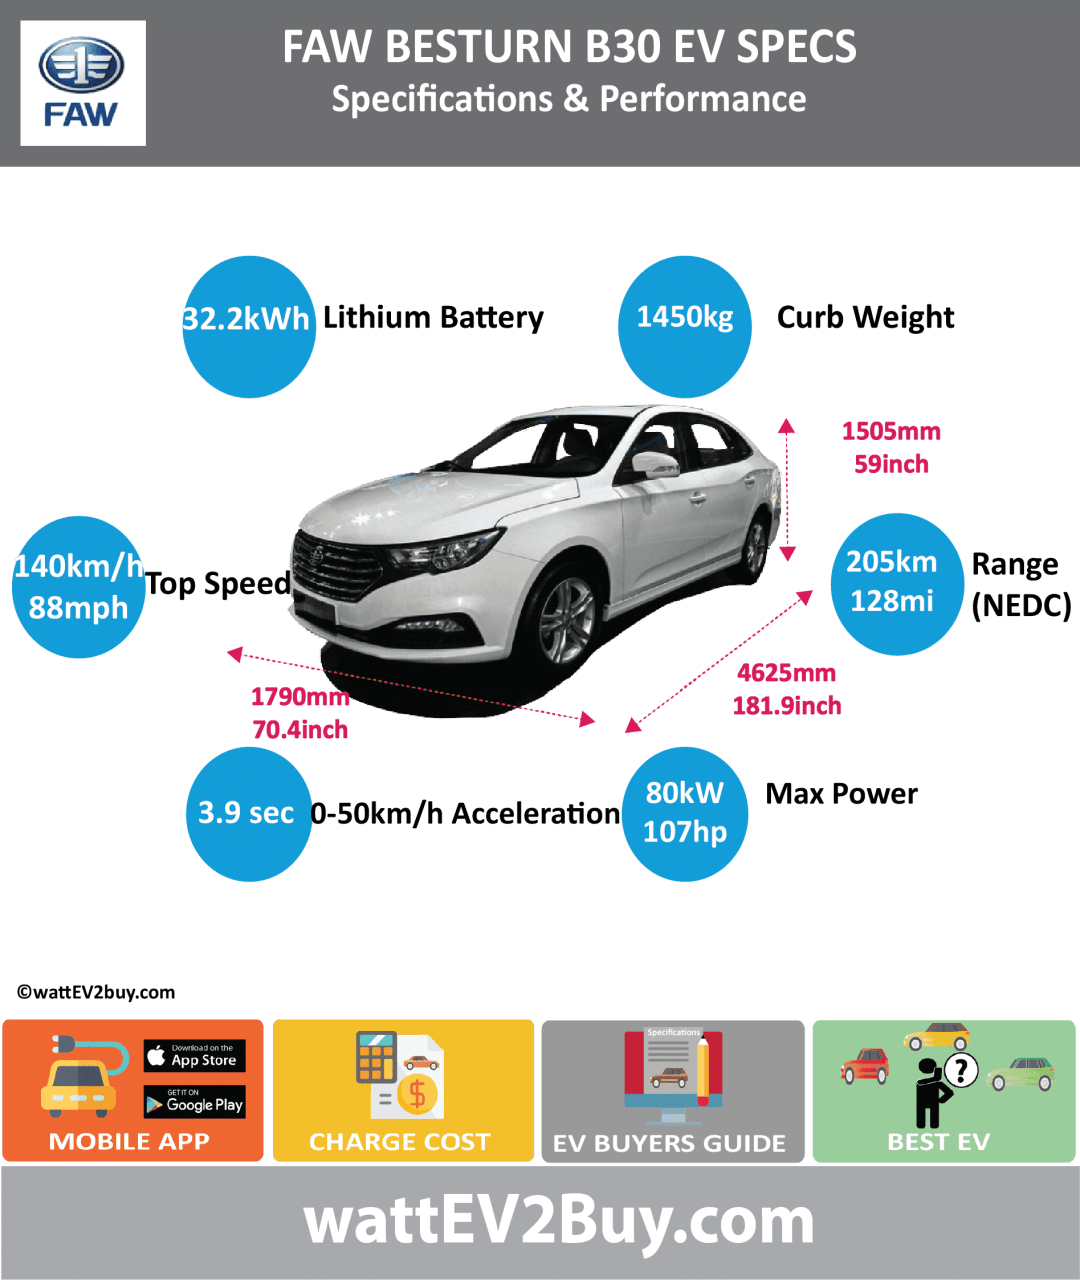 FAW Besturn B30 EV Specs wattev2Buy.com 2016 2017 Battery Chemistry Ternary Battery Capacity kWh 24.24 32.24 Battery Nominal rating kWh Voltage V Amps Ah Cells Modules Efficiency Weight (kg) 285 Cell Type SOC Cooling Cycles Battery Type Depth of Discharge (DOD) Energy Density Wh/kg Battery Manufacturer China FAW Group Corporation Battery Warranty - years Battery Warranty - km Battery Warranty - miles Battery Electric Range - at constant 38mph 175 Battery Electric Range - at constant 60km/h 280 Battery Electric Range - NEDC Mi 112.5 128.125 Battery Electric Range - NEDC km 180 205 Battery Electric Range - CCM Mi Battery Electric Range - CCM km Battery Electric Range - EPA Mi Battery Electric Range - EPA km Electric Top Speed - mph 87.5 Electric Top Speed - km/h 140 Acceleration 0 - 100km/h sec Acceleration 0 - 50km/h sec 3.9 Acceleration 0 - 62mph sec Acceleration 0 - 60mph sec Acceleration 0 - 37.2mph sec Wireless Charging Direct Current Fast Charge kW Charger Efficiency Onboard Charger kW Onboard Charger Optional kW Charging Cord - amps Charging Cord - volts LV 1 Charge kW LV 1 Charge Time (Hours) LV 2 Charge kW LV 2 Charge Time (Hours) LV 3 CCS/Combo kW LV 3 Charge Time (min to 70%) LV 3 Charge Time (min to 80%) LV 3 Charge Time (mi) LV 3 Charge Time (km) Supercharger Charging System kW Charger Output Charge Connector Power Outlet kW Power Outlet Amps MPGe Combined - miles MPGe Combined - km MPGe City - miles MPGe City - km MPGe Highway - miles MPGe Highway - km Max Power - hp (Electric Max) 107.2816 Max Power - kW (Electric Max) 80 Max Torque - lb.ft (Electric Max) Max Torque - N.m (Electric Max) Drivetrain Generator Motor Type Electric Motor Manufacturer Shanghai Electric Drive Co., Ltd. Electric Motor Output kW Electric Motor Output hp Transmission Electric Motor - Rear Max Power - hp (Rear) Max Power - kW (Rear) Max Torque - lb.ft (Rear) Max Torque - N.m (Rear) Electric Motor - Front Max Power - hp (Front) Max Power - kW (Front) Max Torque - lb.ft (Front) Max 